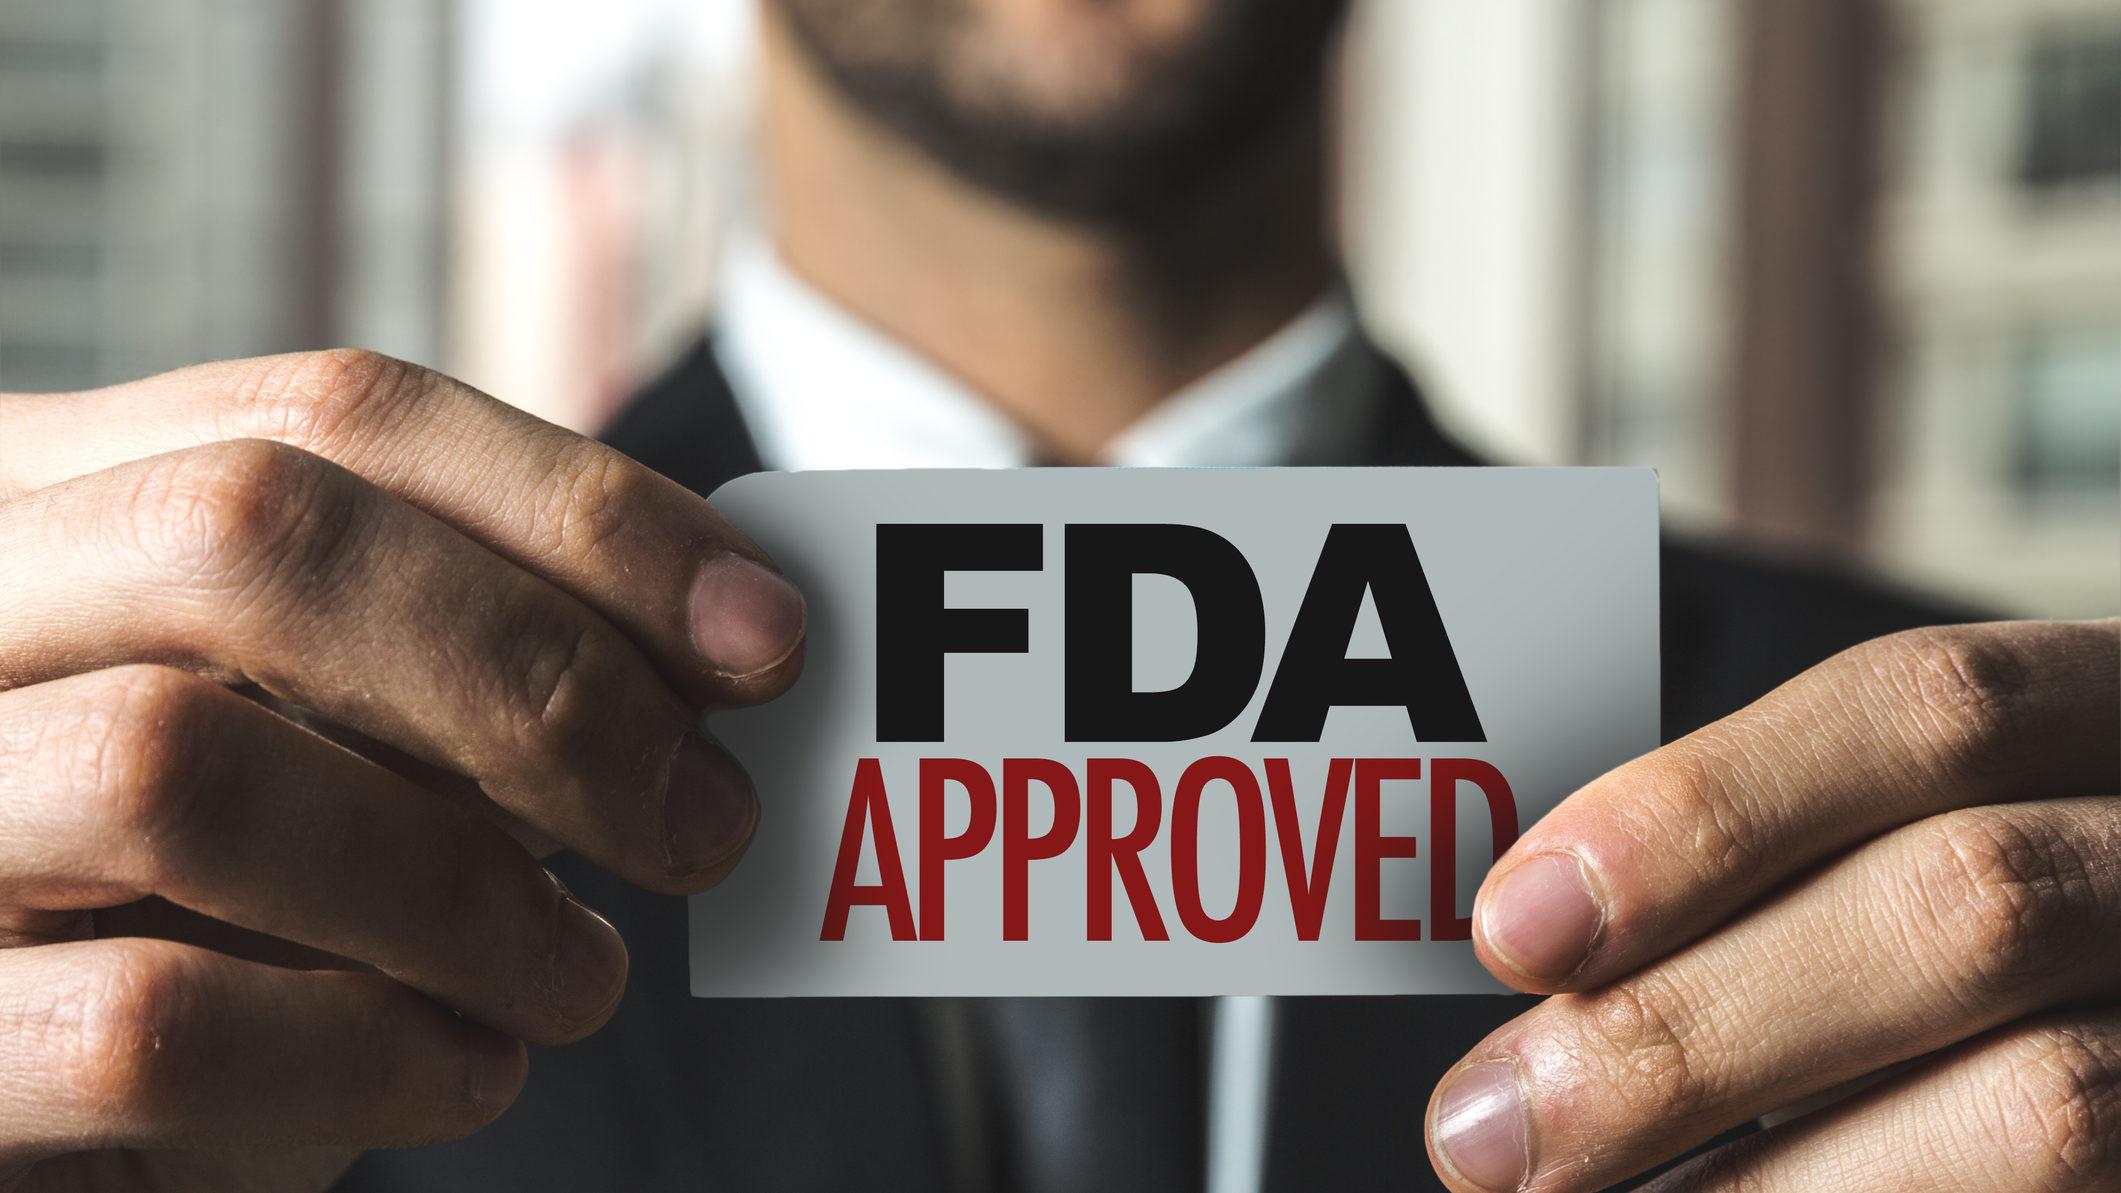 Cure for Cancer FDA approved medicine